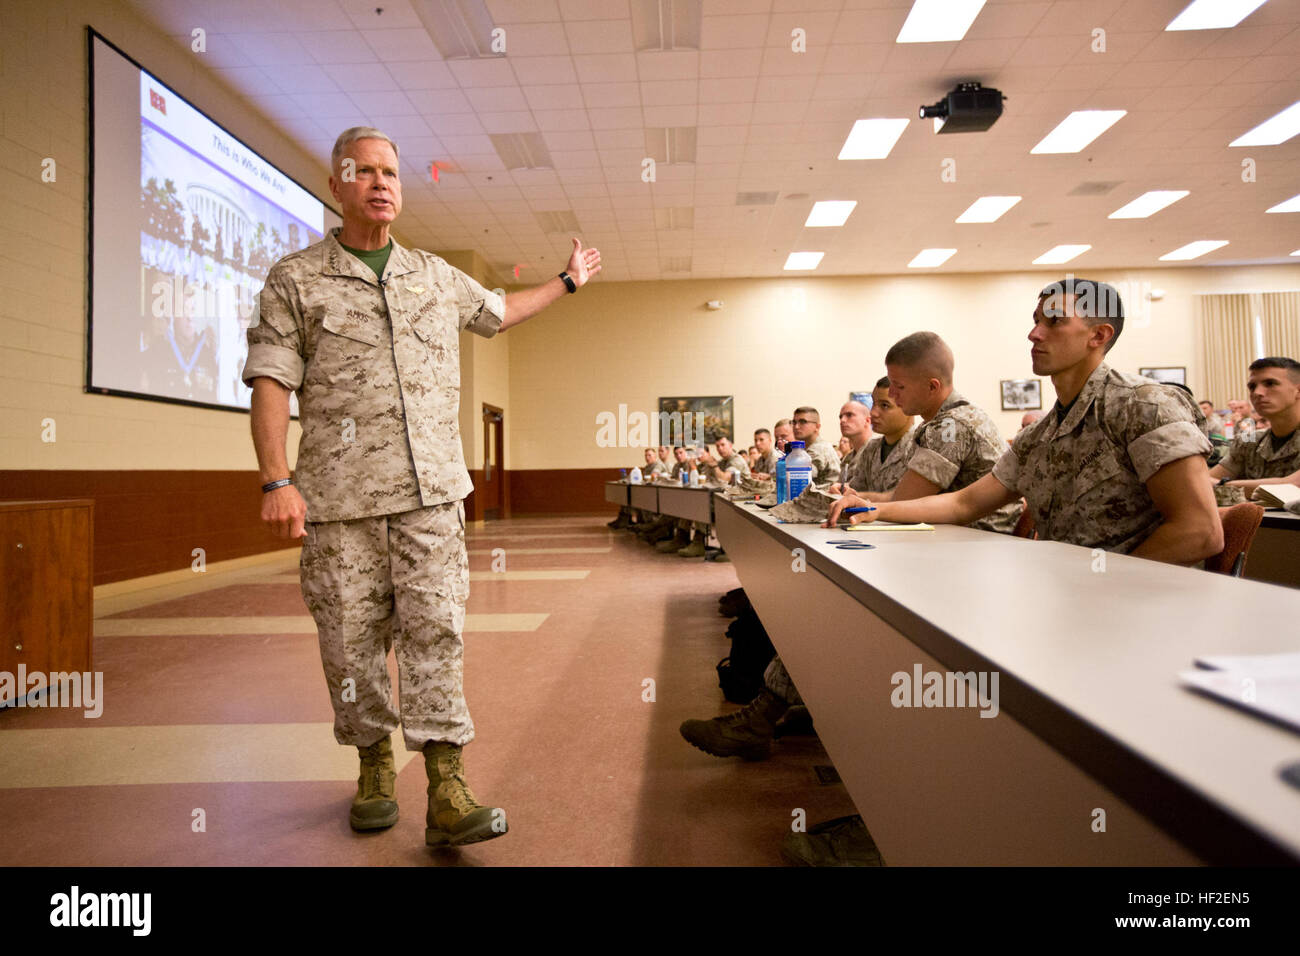 Commandant of the U.S. Marine Corps, Gen. James F. Amos, speaks to Marines with charlie company (C CO), The Basic Stock Photo